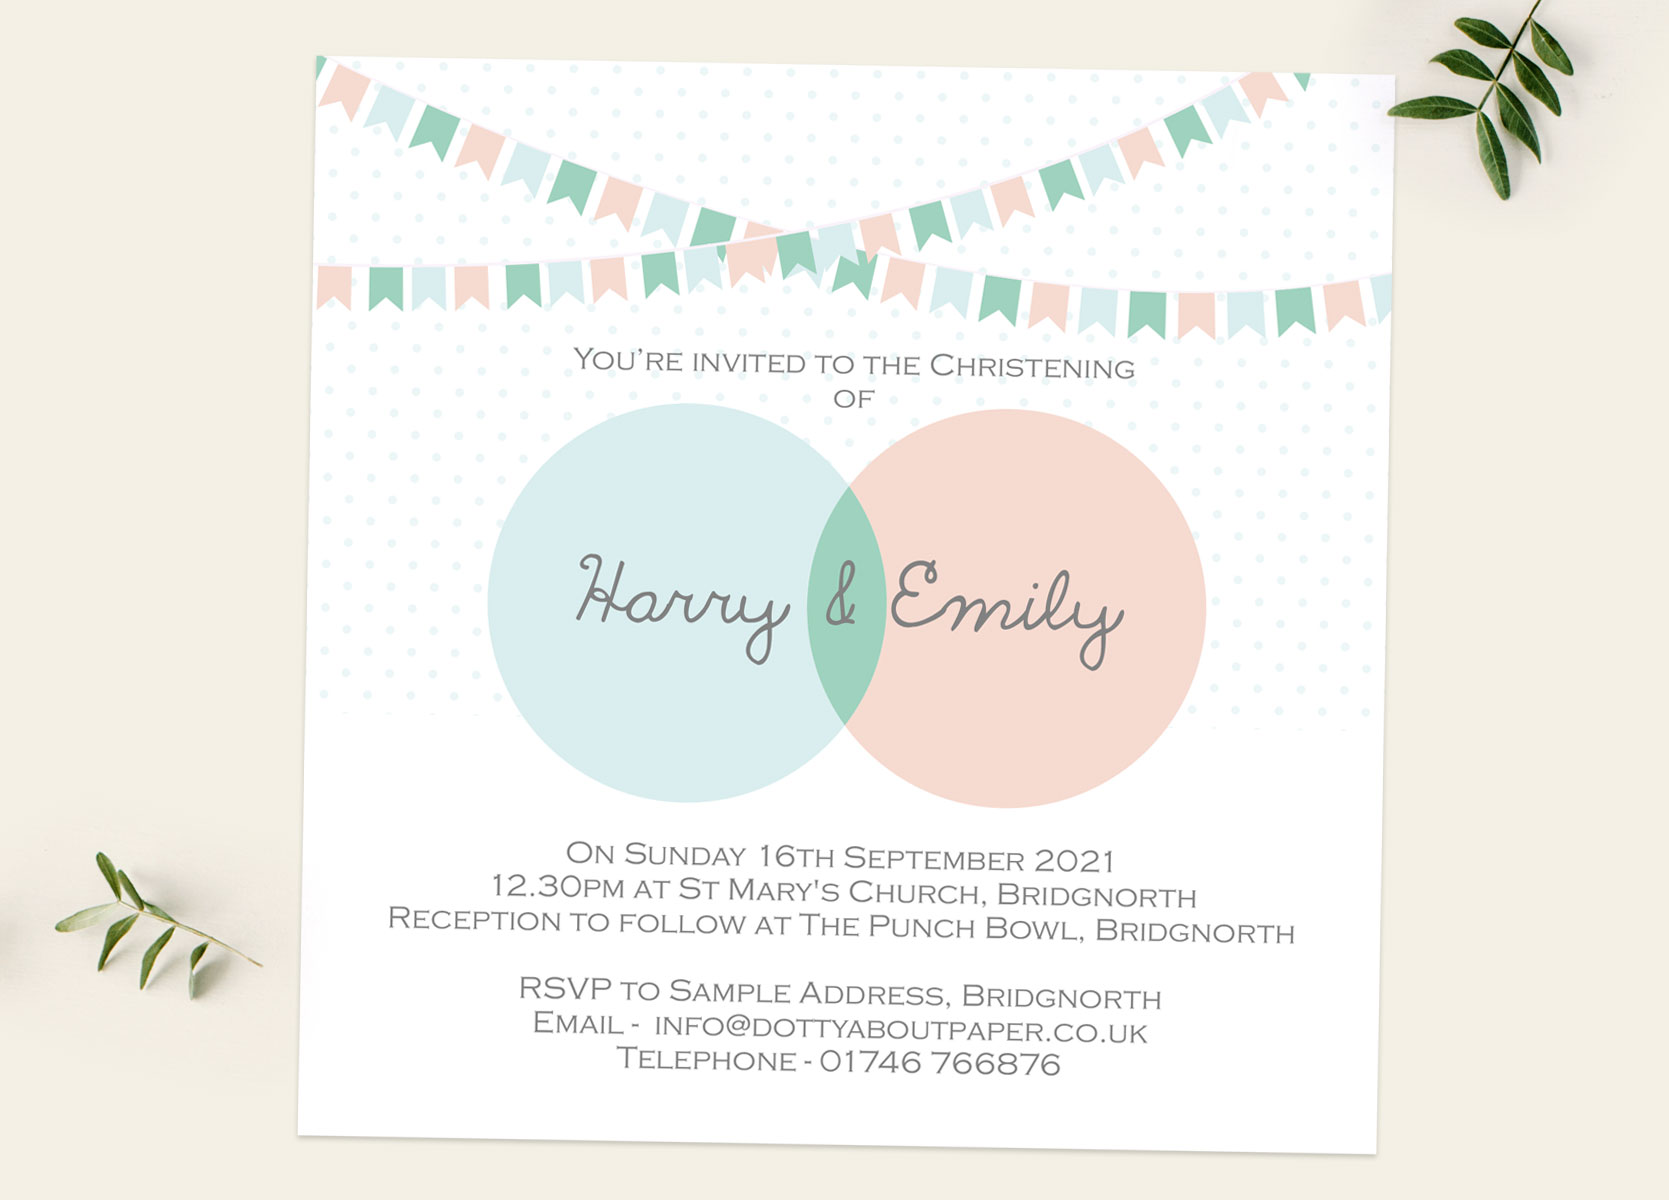 Twins & Triplets Christening Invitations